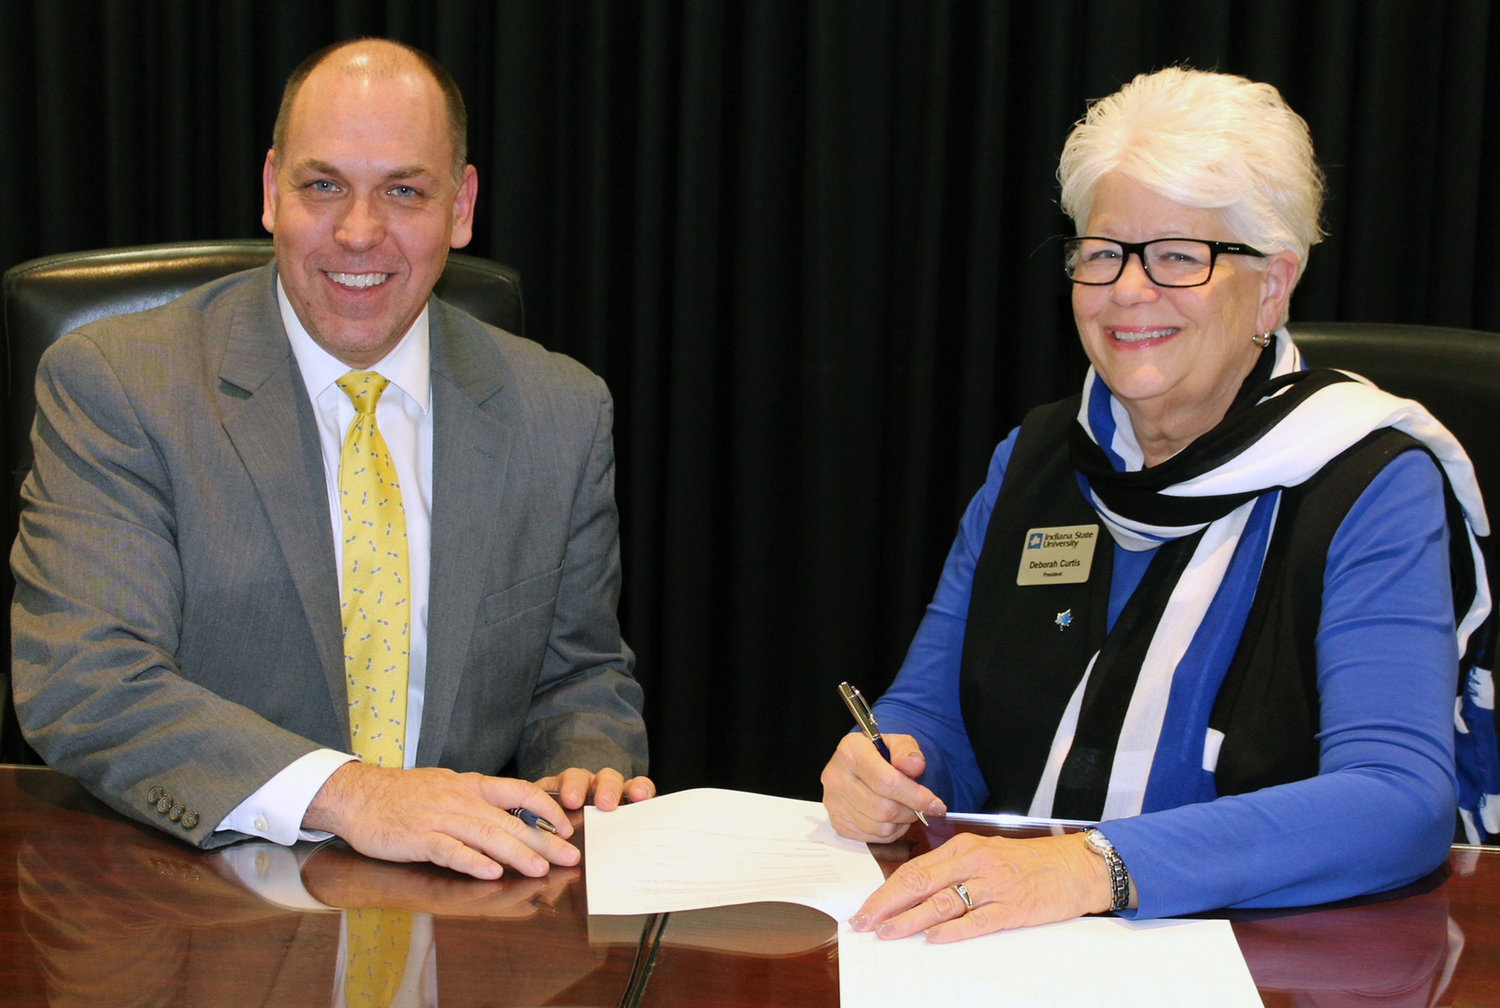 Indiana State University President Deborah Curtis, right, signs the gift agreement making NAL the first formal corporate partner of ISU. At left is NAL president Kirk Gadberry.